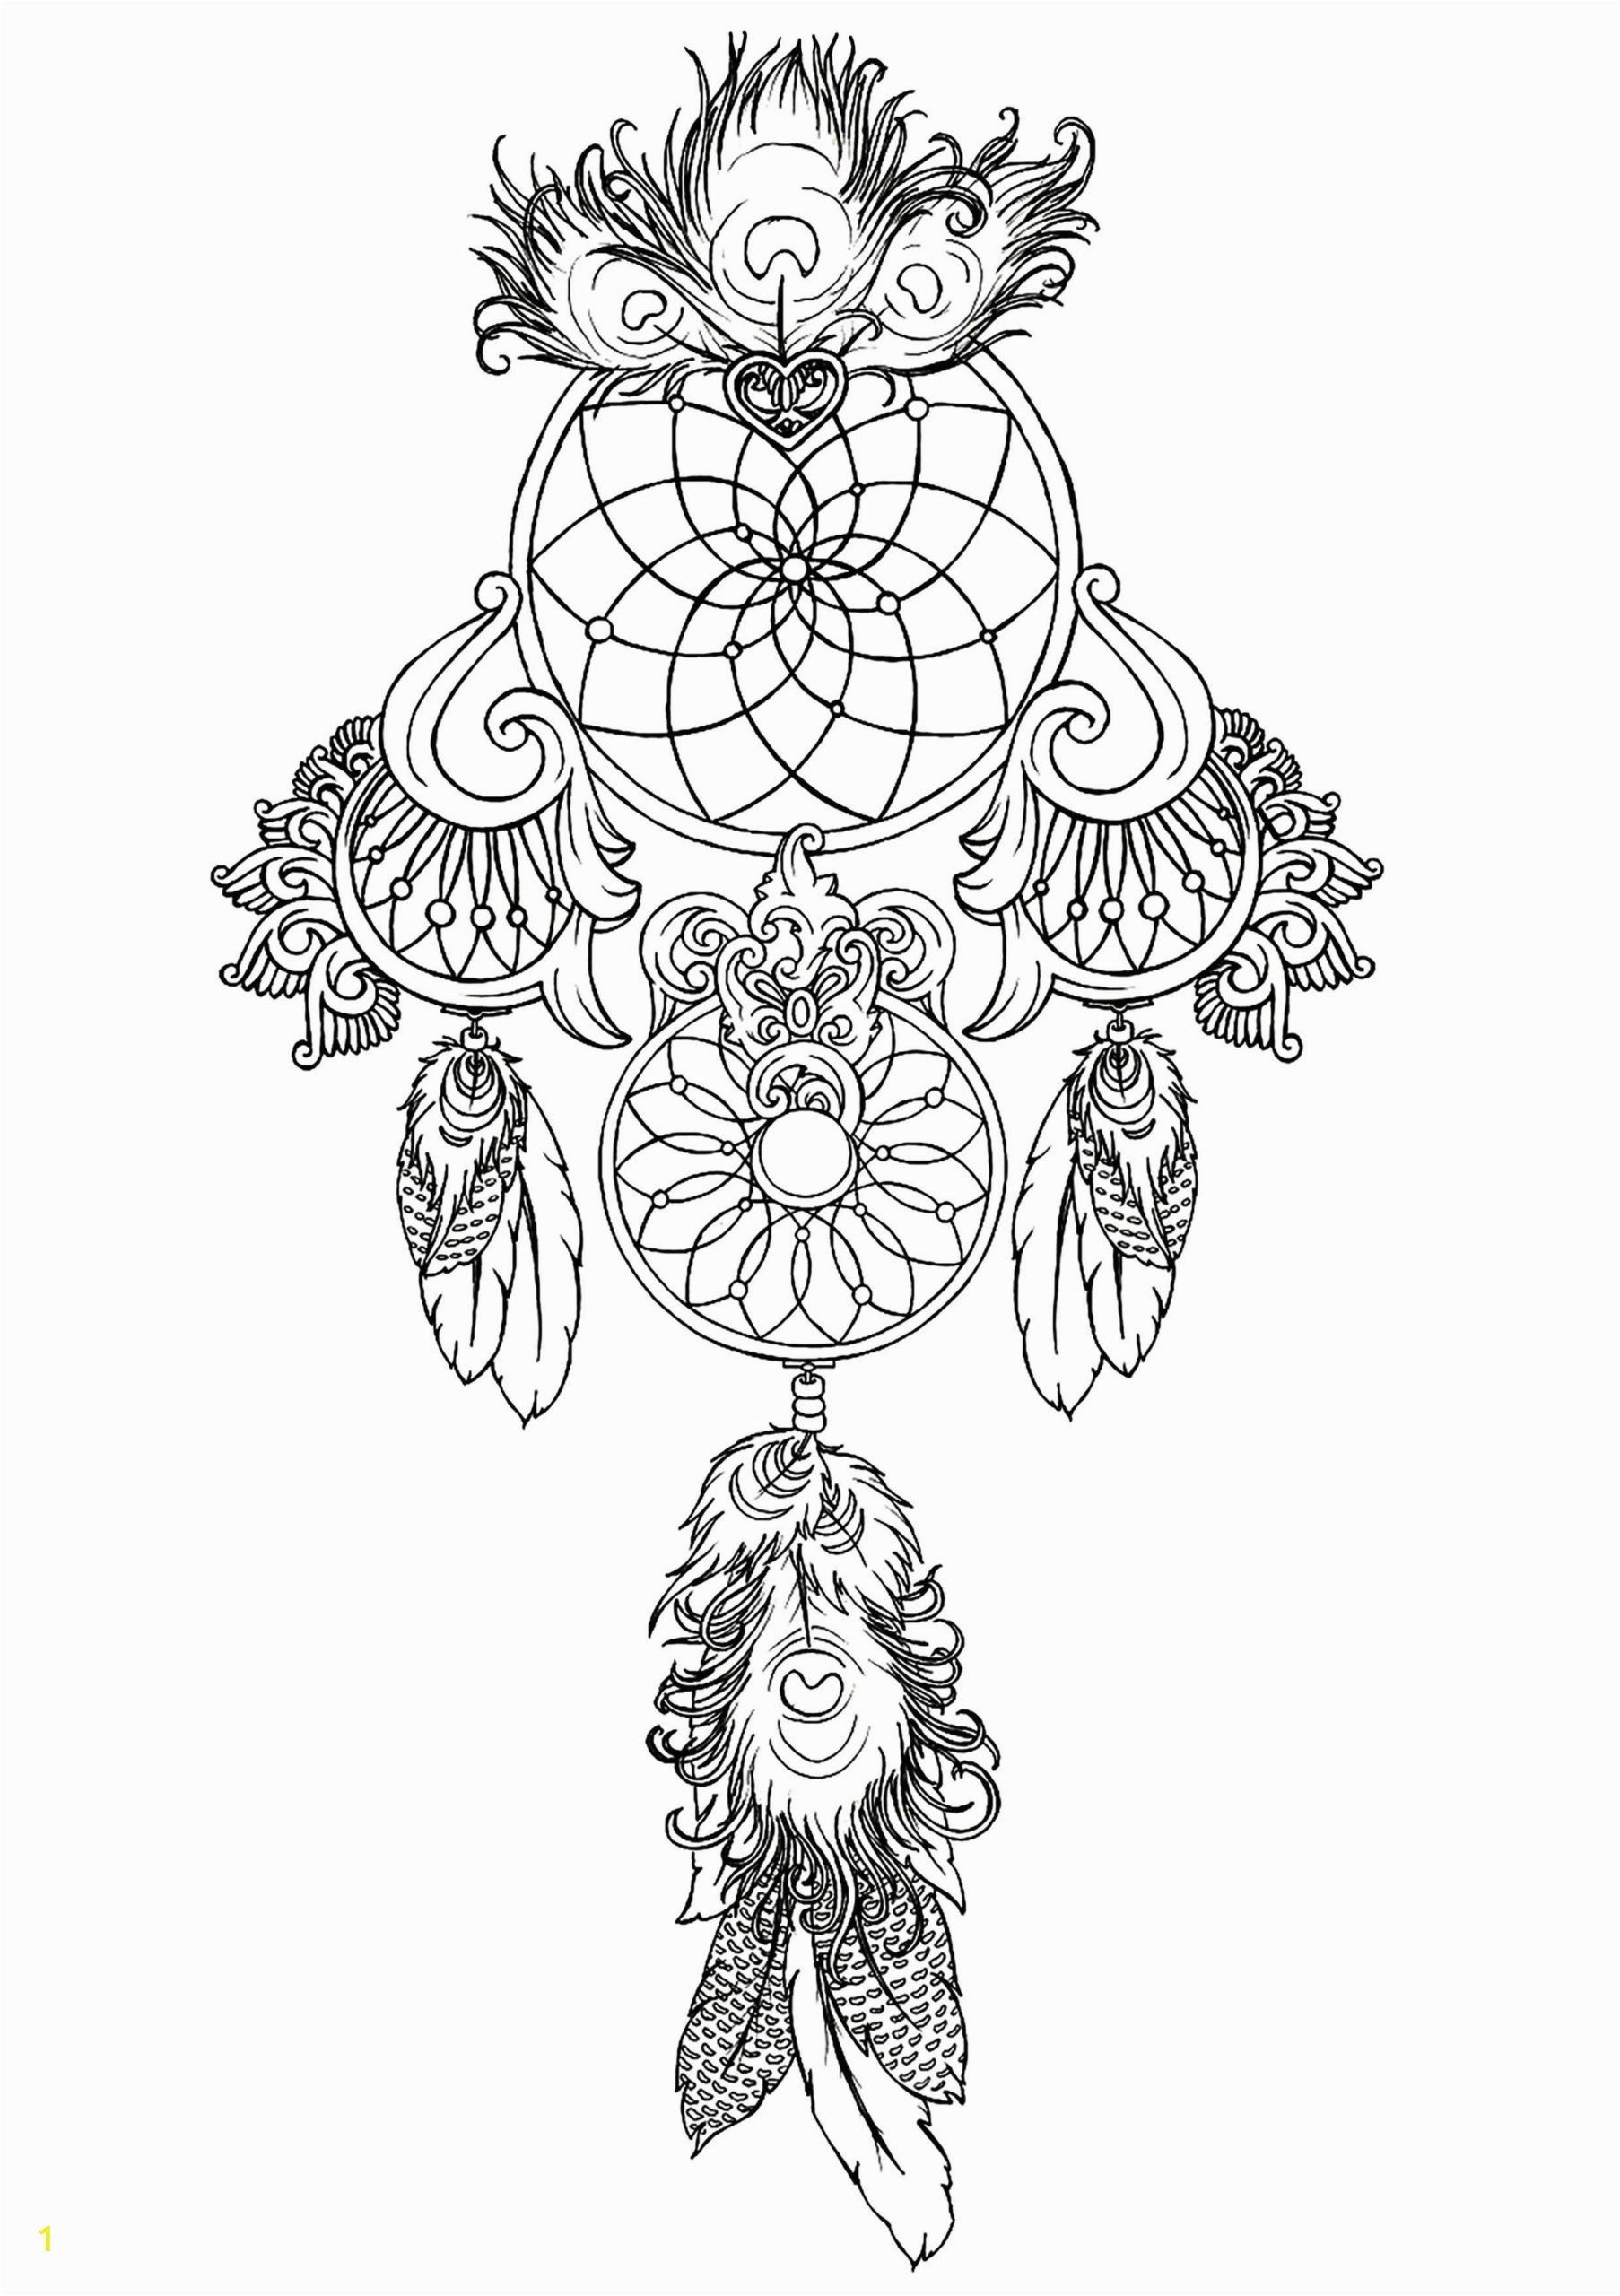 mandala coloring sheets print childrens pages grateful book barney elephant colouring for adults advent pineapple page soccer cursing snowman patterns fantasy holiday 1